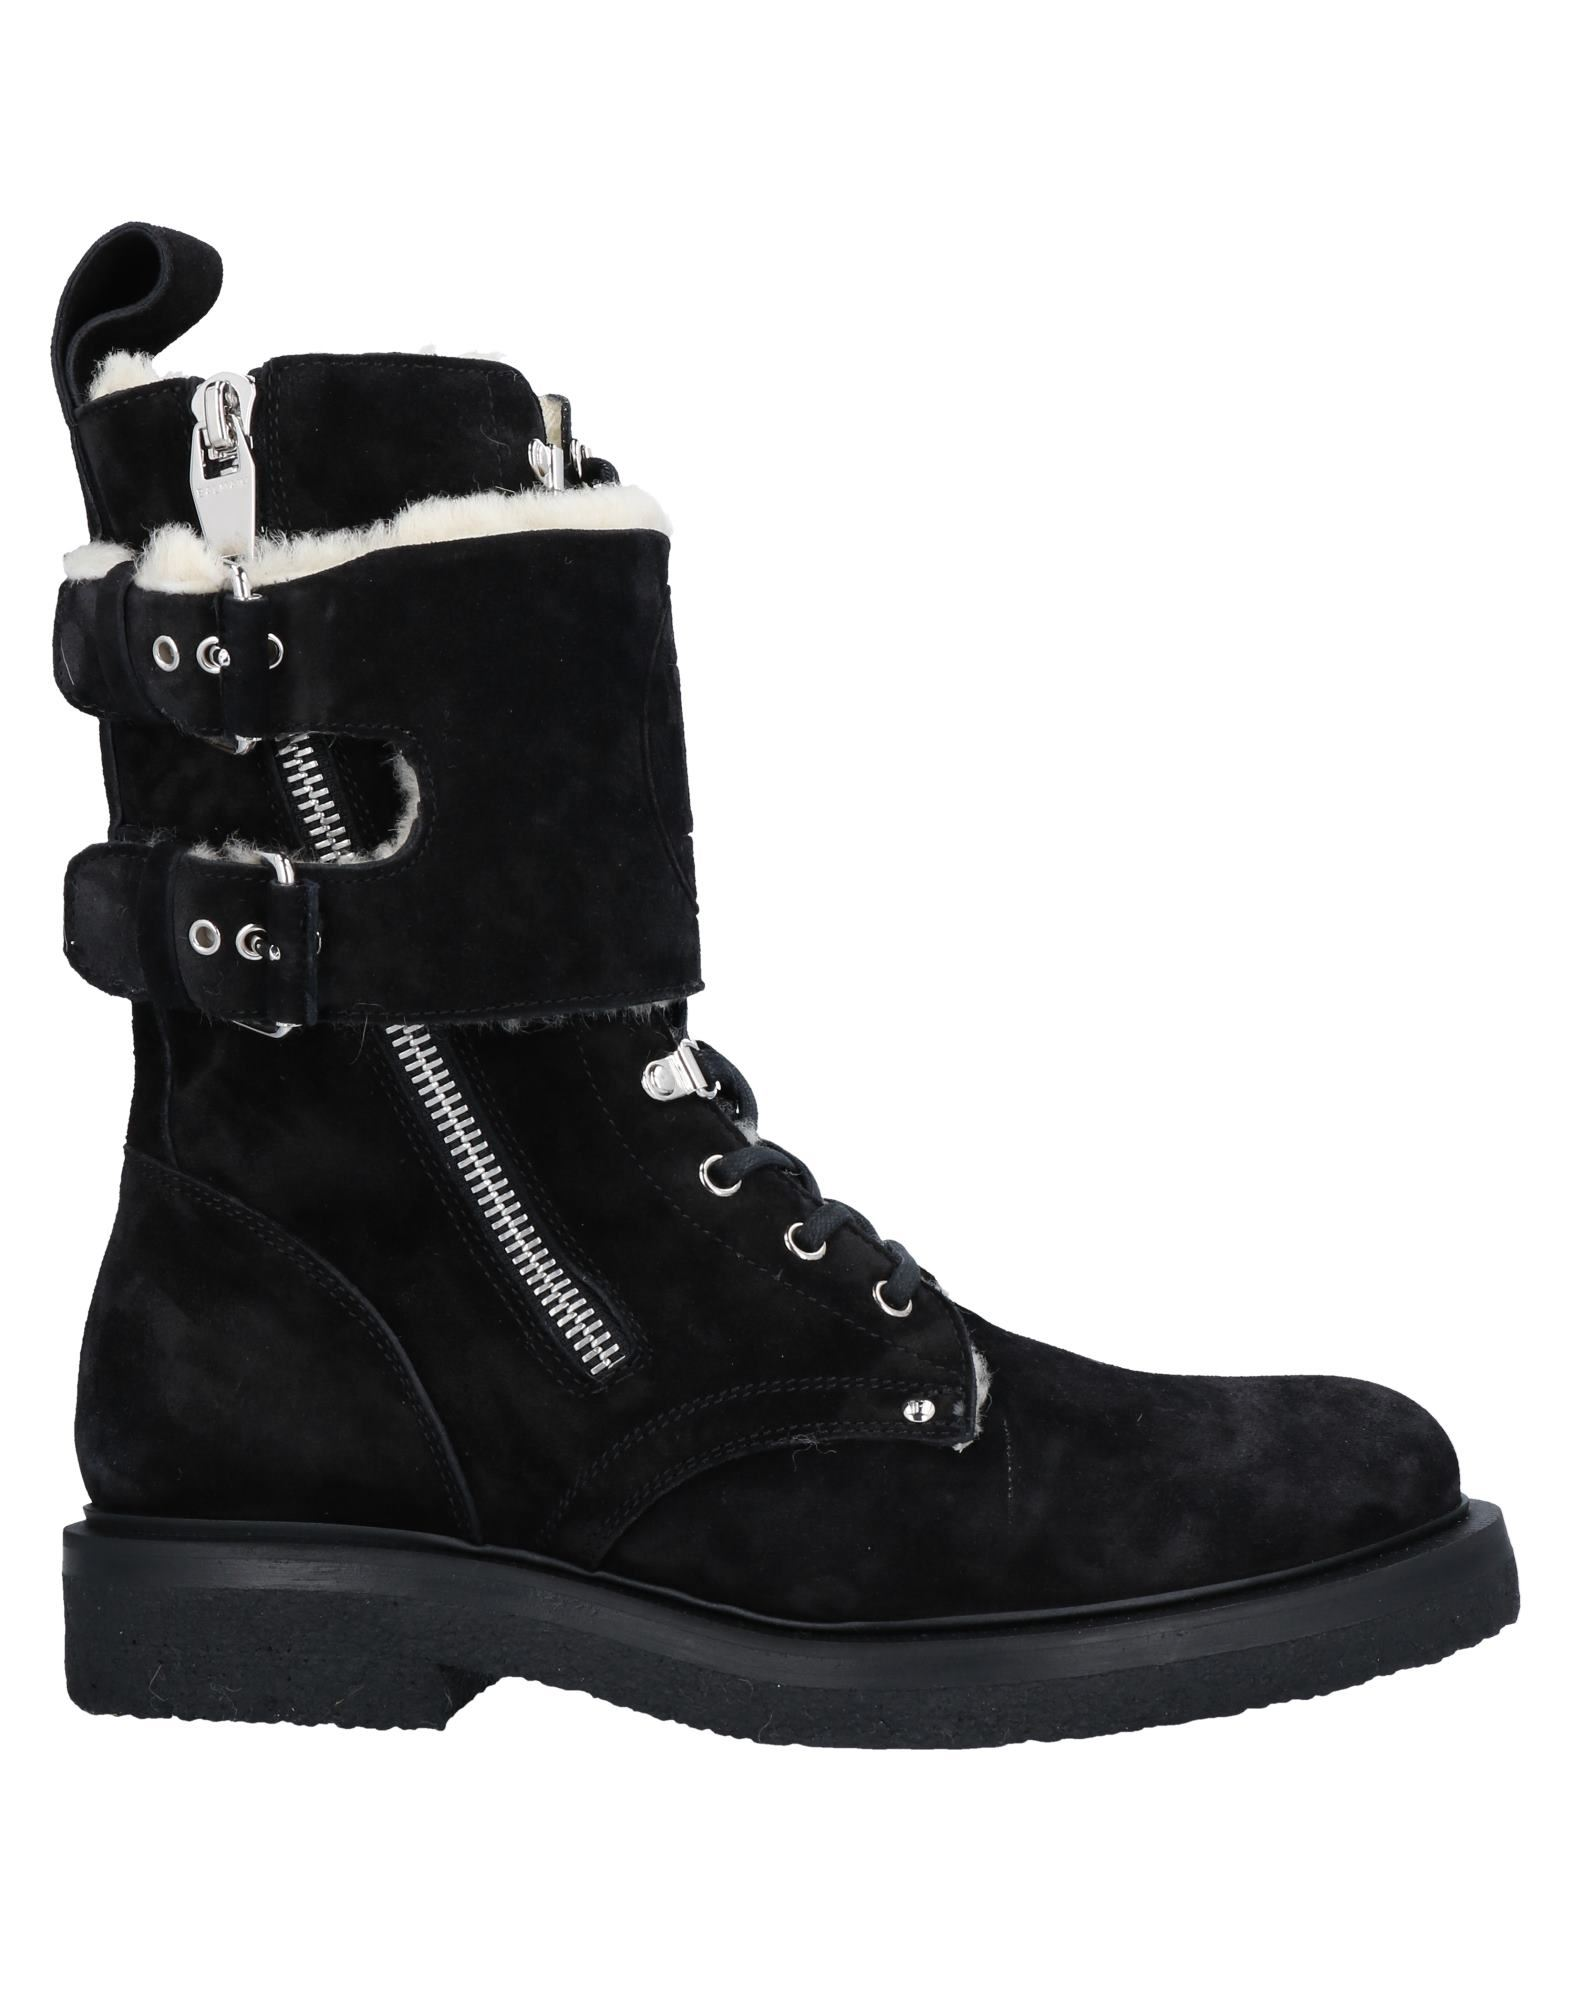 BALMAIN Ankle boots. leather, suede effect, logo, solid color, zipper closure, round toeline, square heel, rubber heel, lined in goat hair, rubber sole, contains non-textile parts of animal origin, small sized. Calfskin, Lambskin